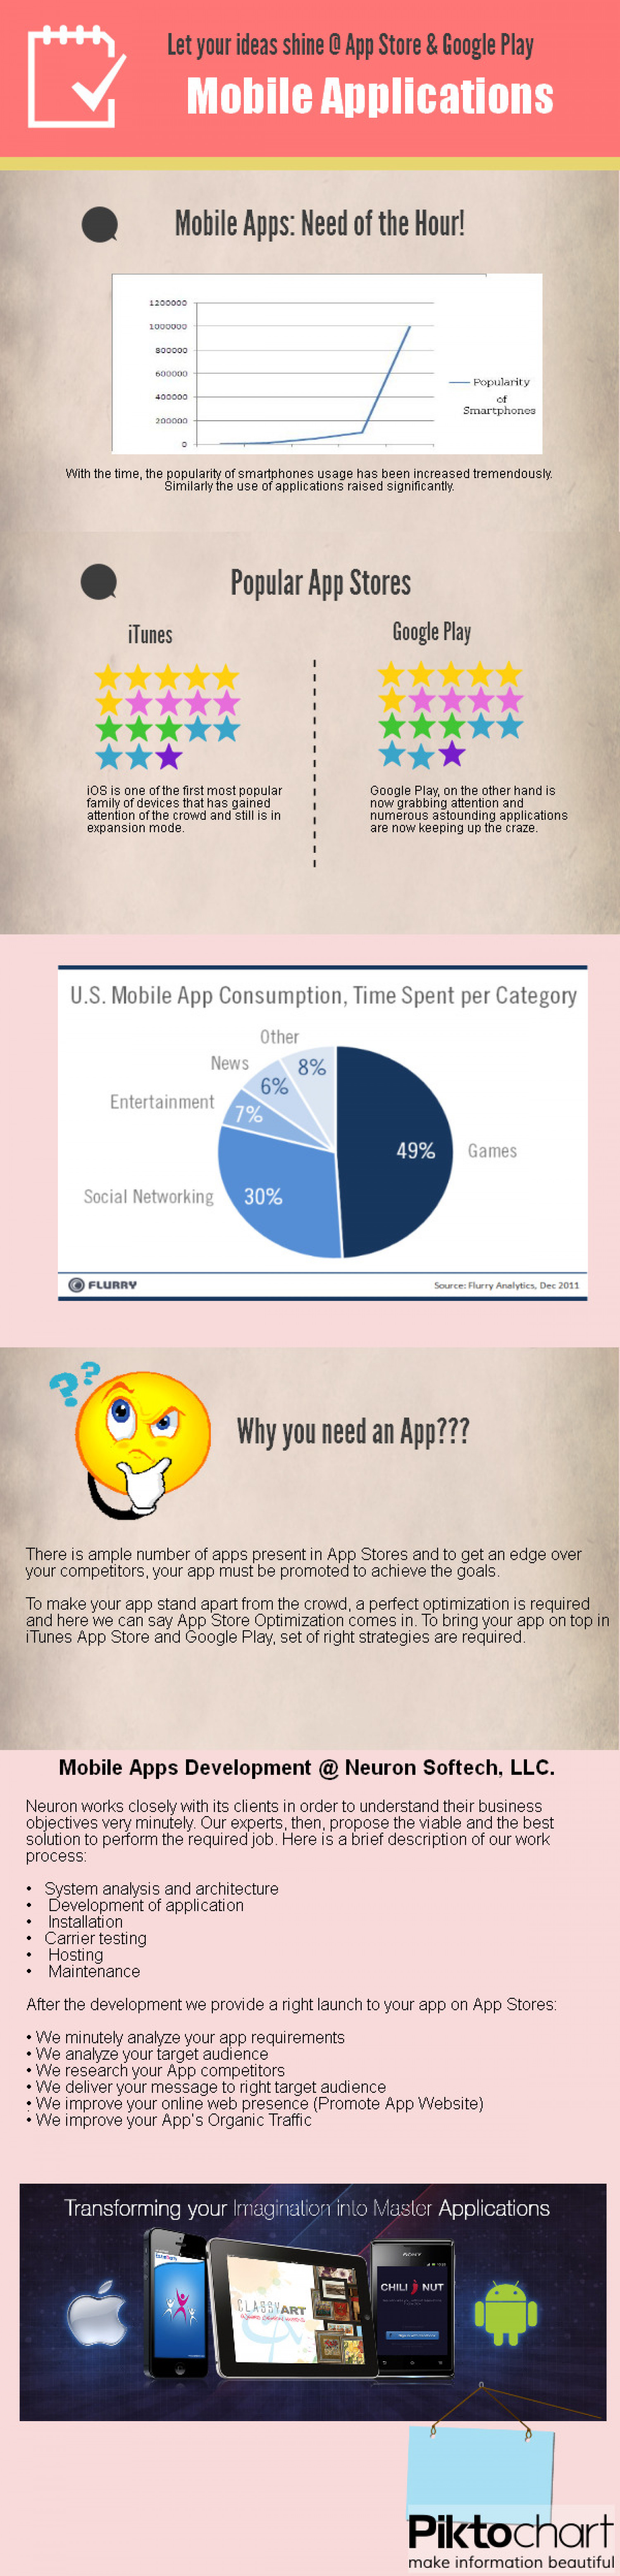 Mobile Applications and Surging Trends! Infographic